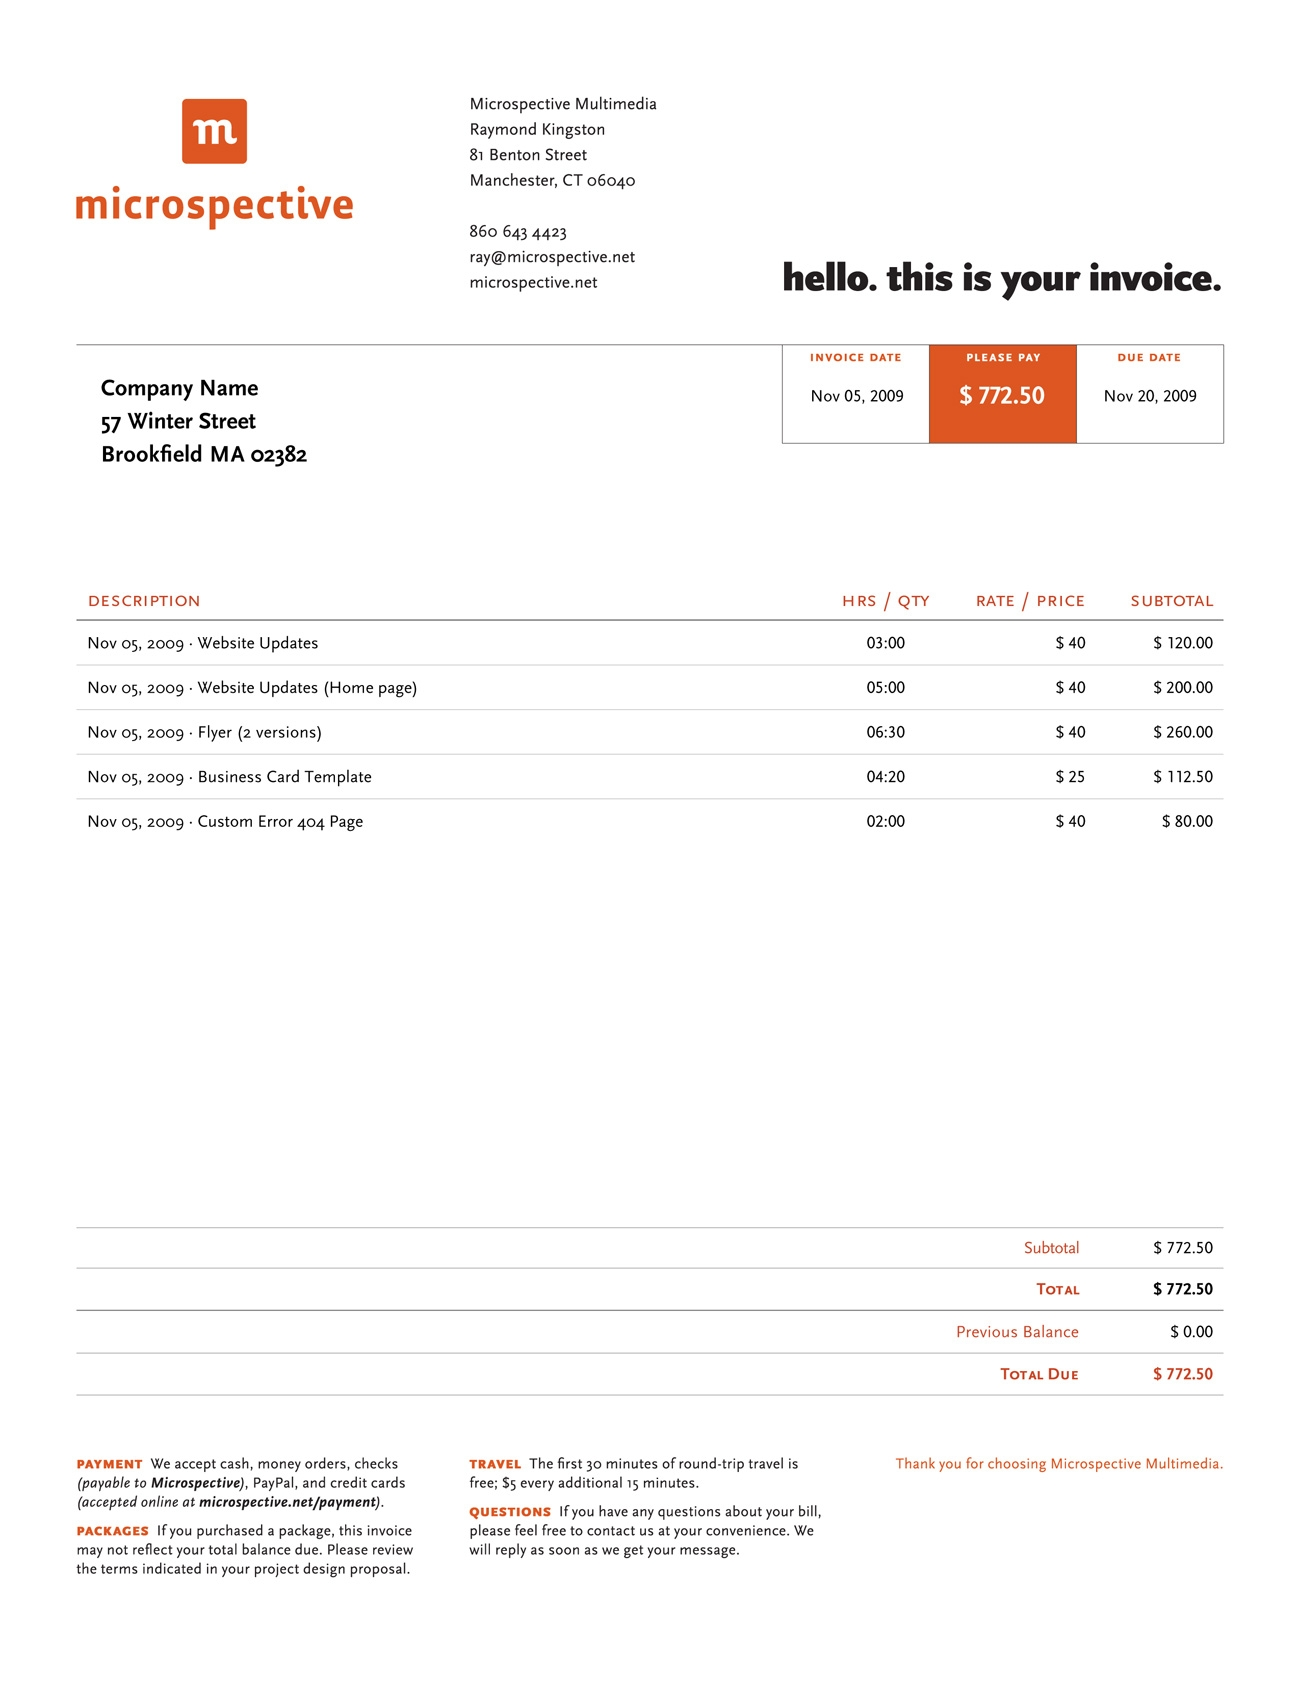 graphic design invoice template invoice like a pro design examples and best practices graphics 1300 X 1682